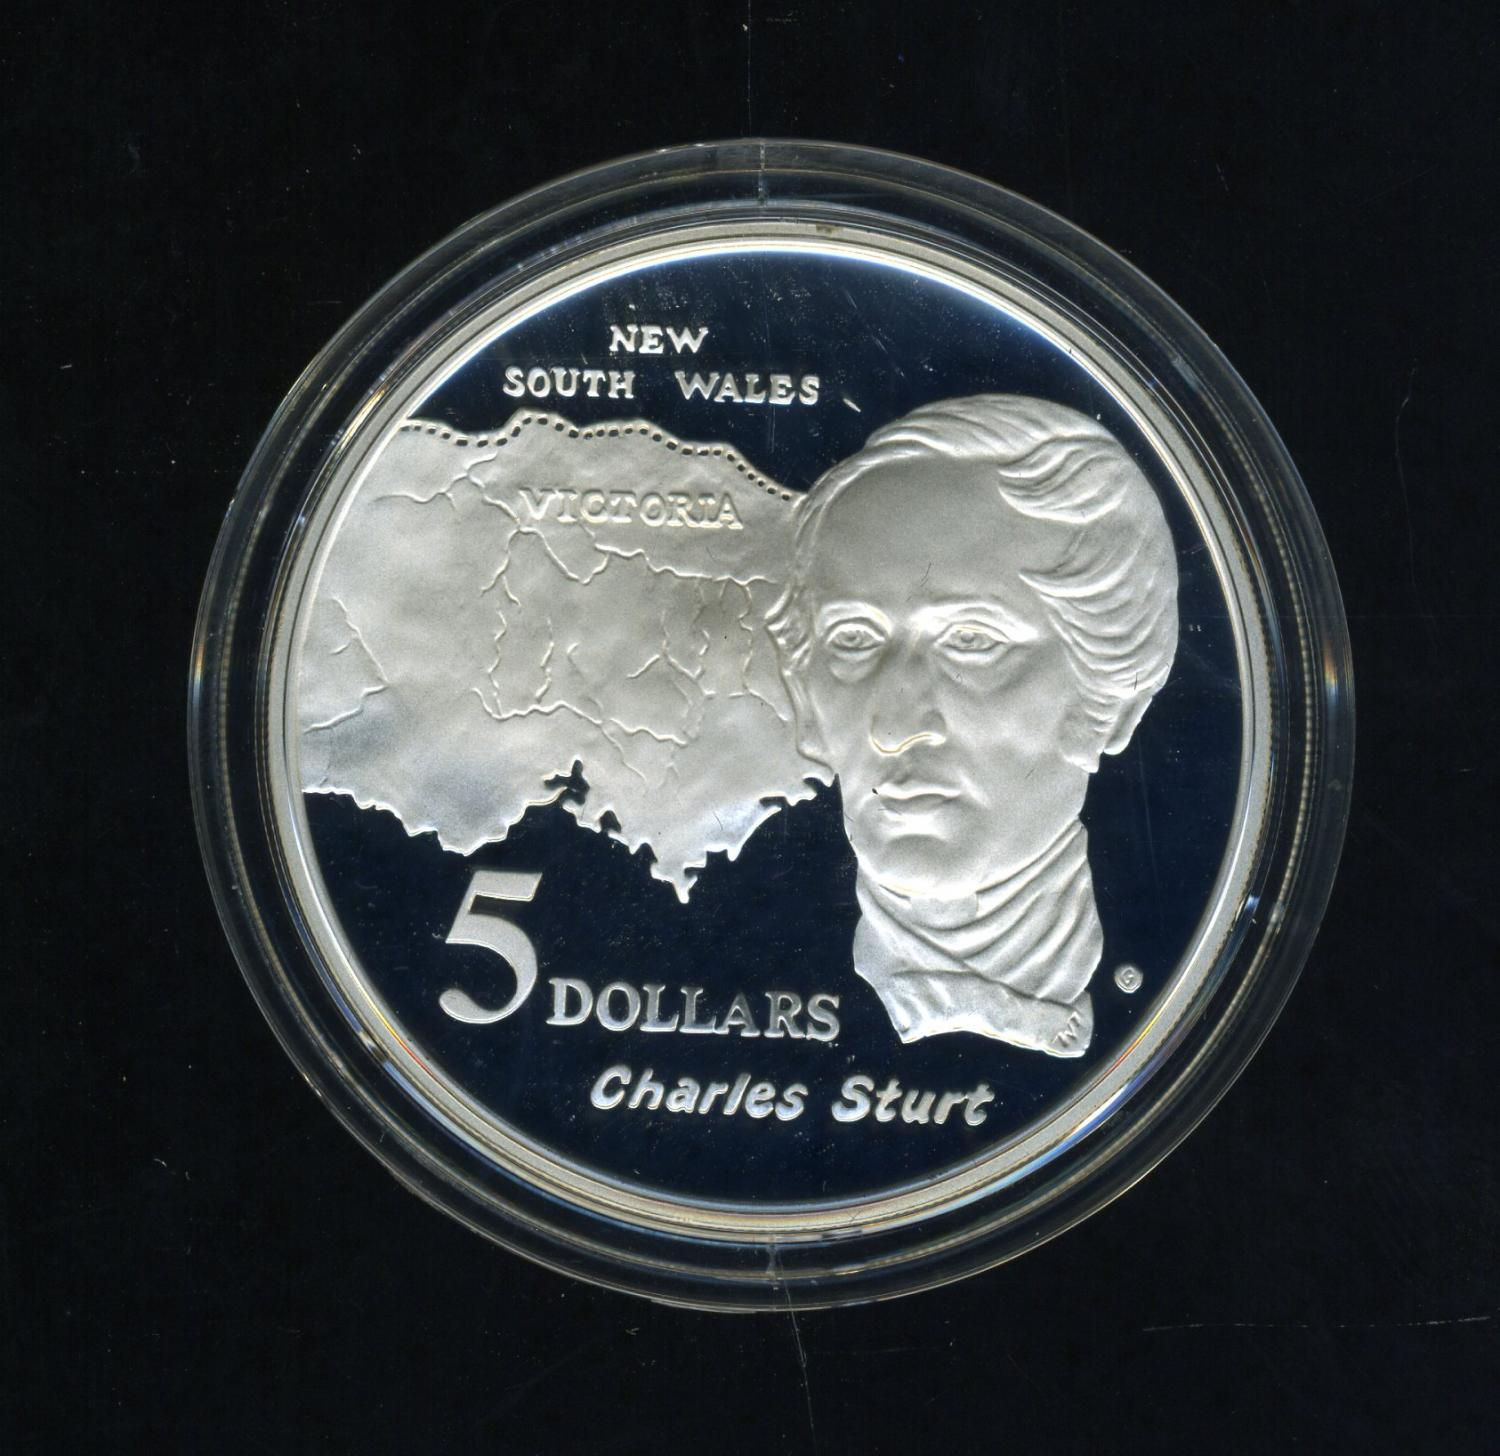 Thumbnail for 1994 Australian $5 Silver Coin From Masterpieces in Silver Set - Charles Sturt.  The Coin is Sterling Silver and contains over 1oz of Pure Silver.